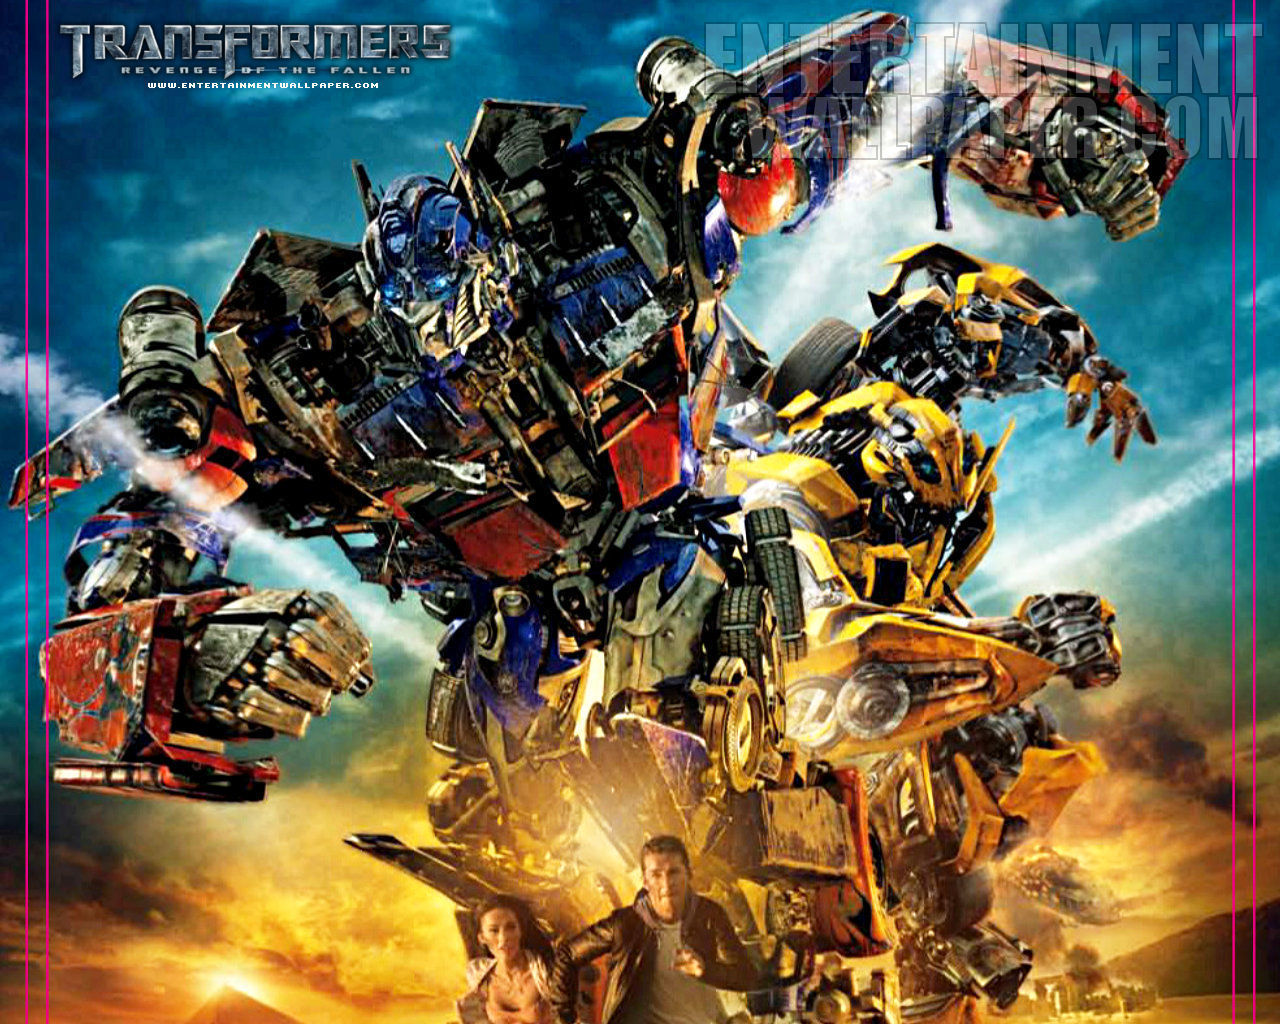 Free wallpaper dekstop transformers wallpaper - Transformers desktop backgrounds ...